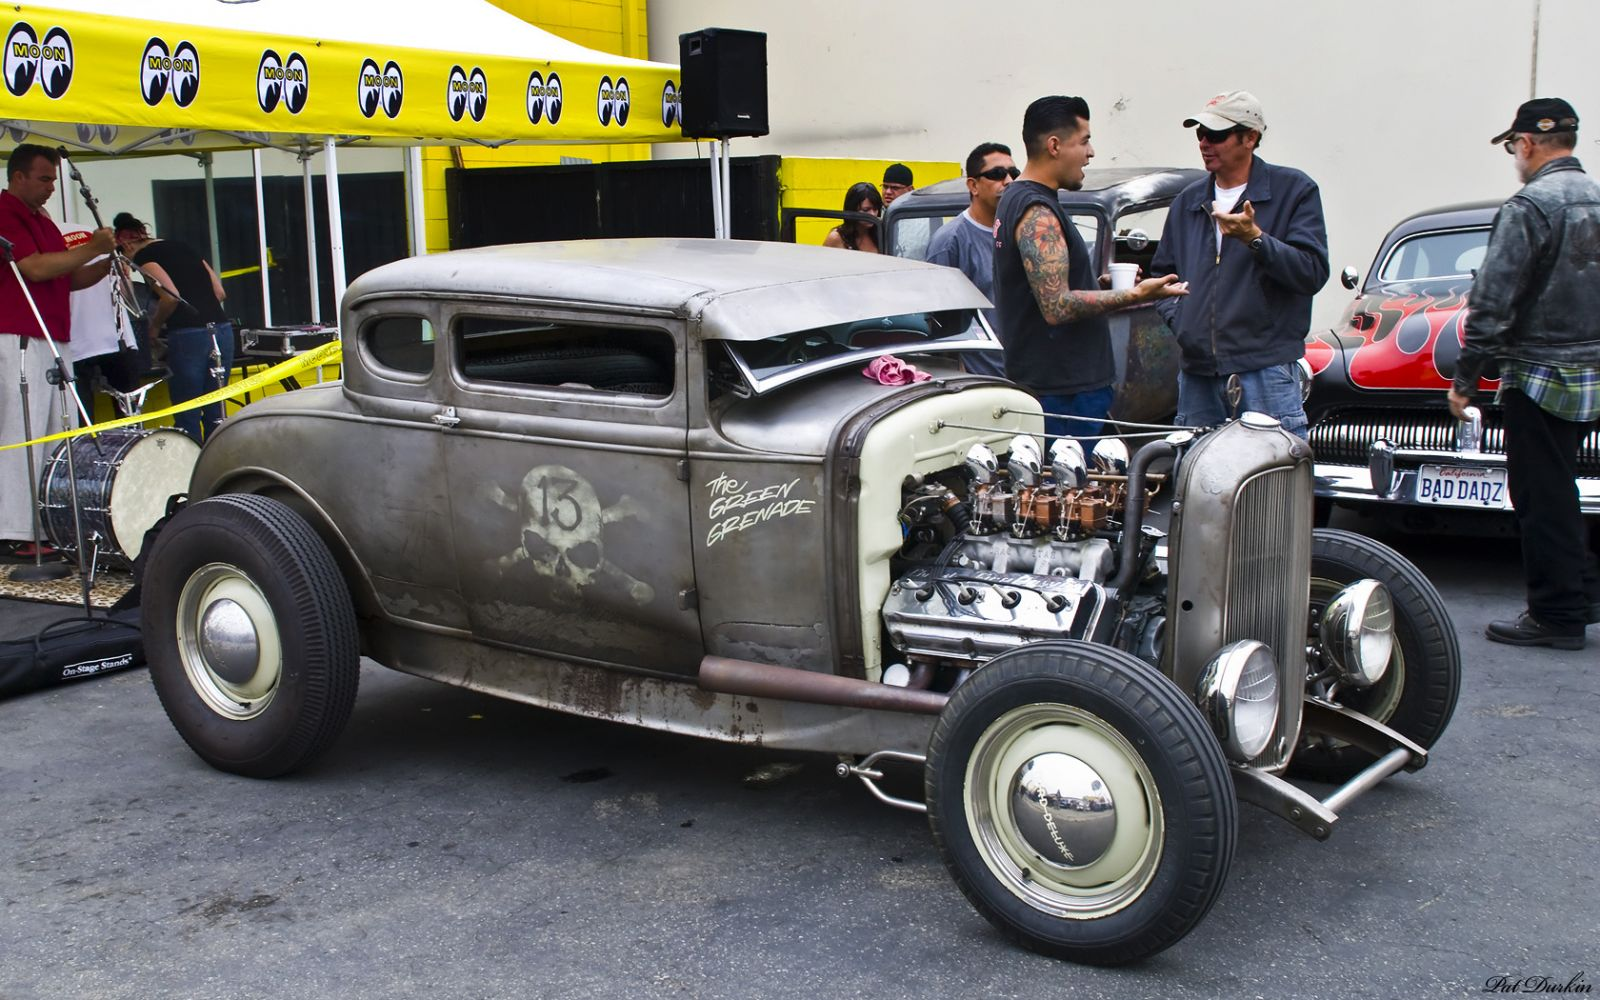 1932 Ford 5-window coupe - chopped rat rod - Hemi powered - fvr ...